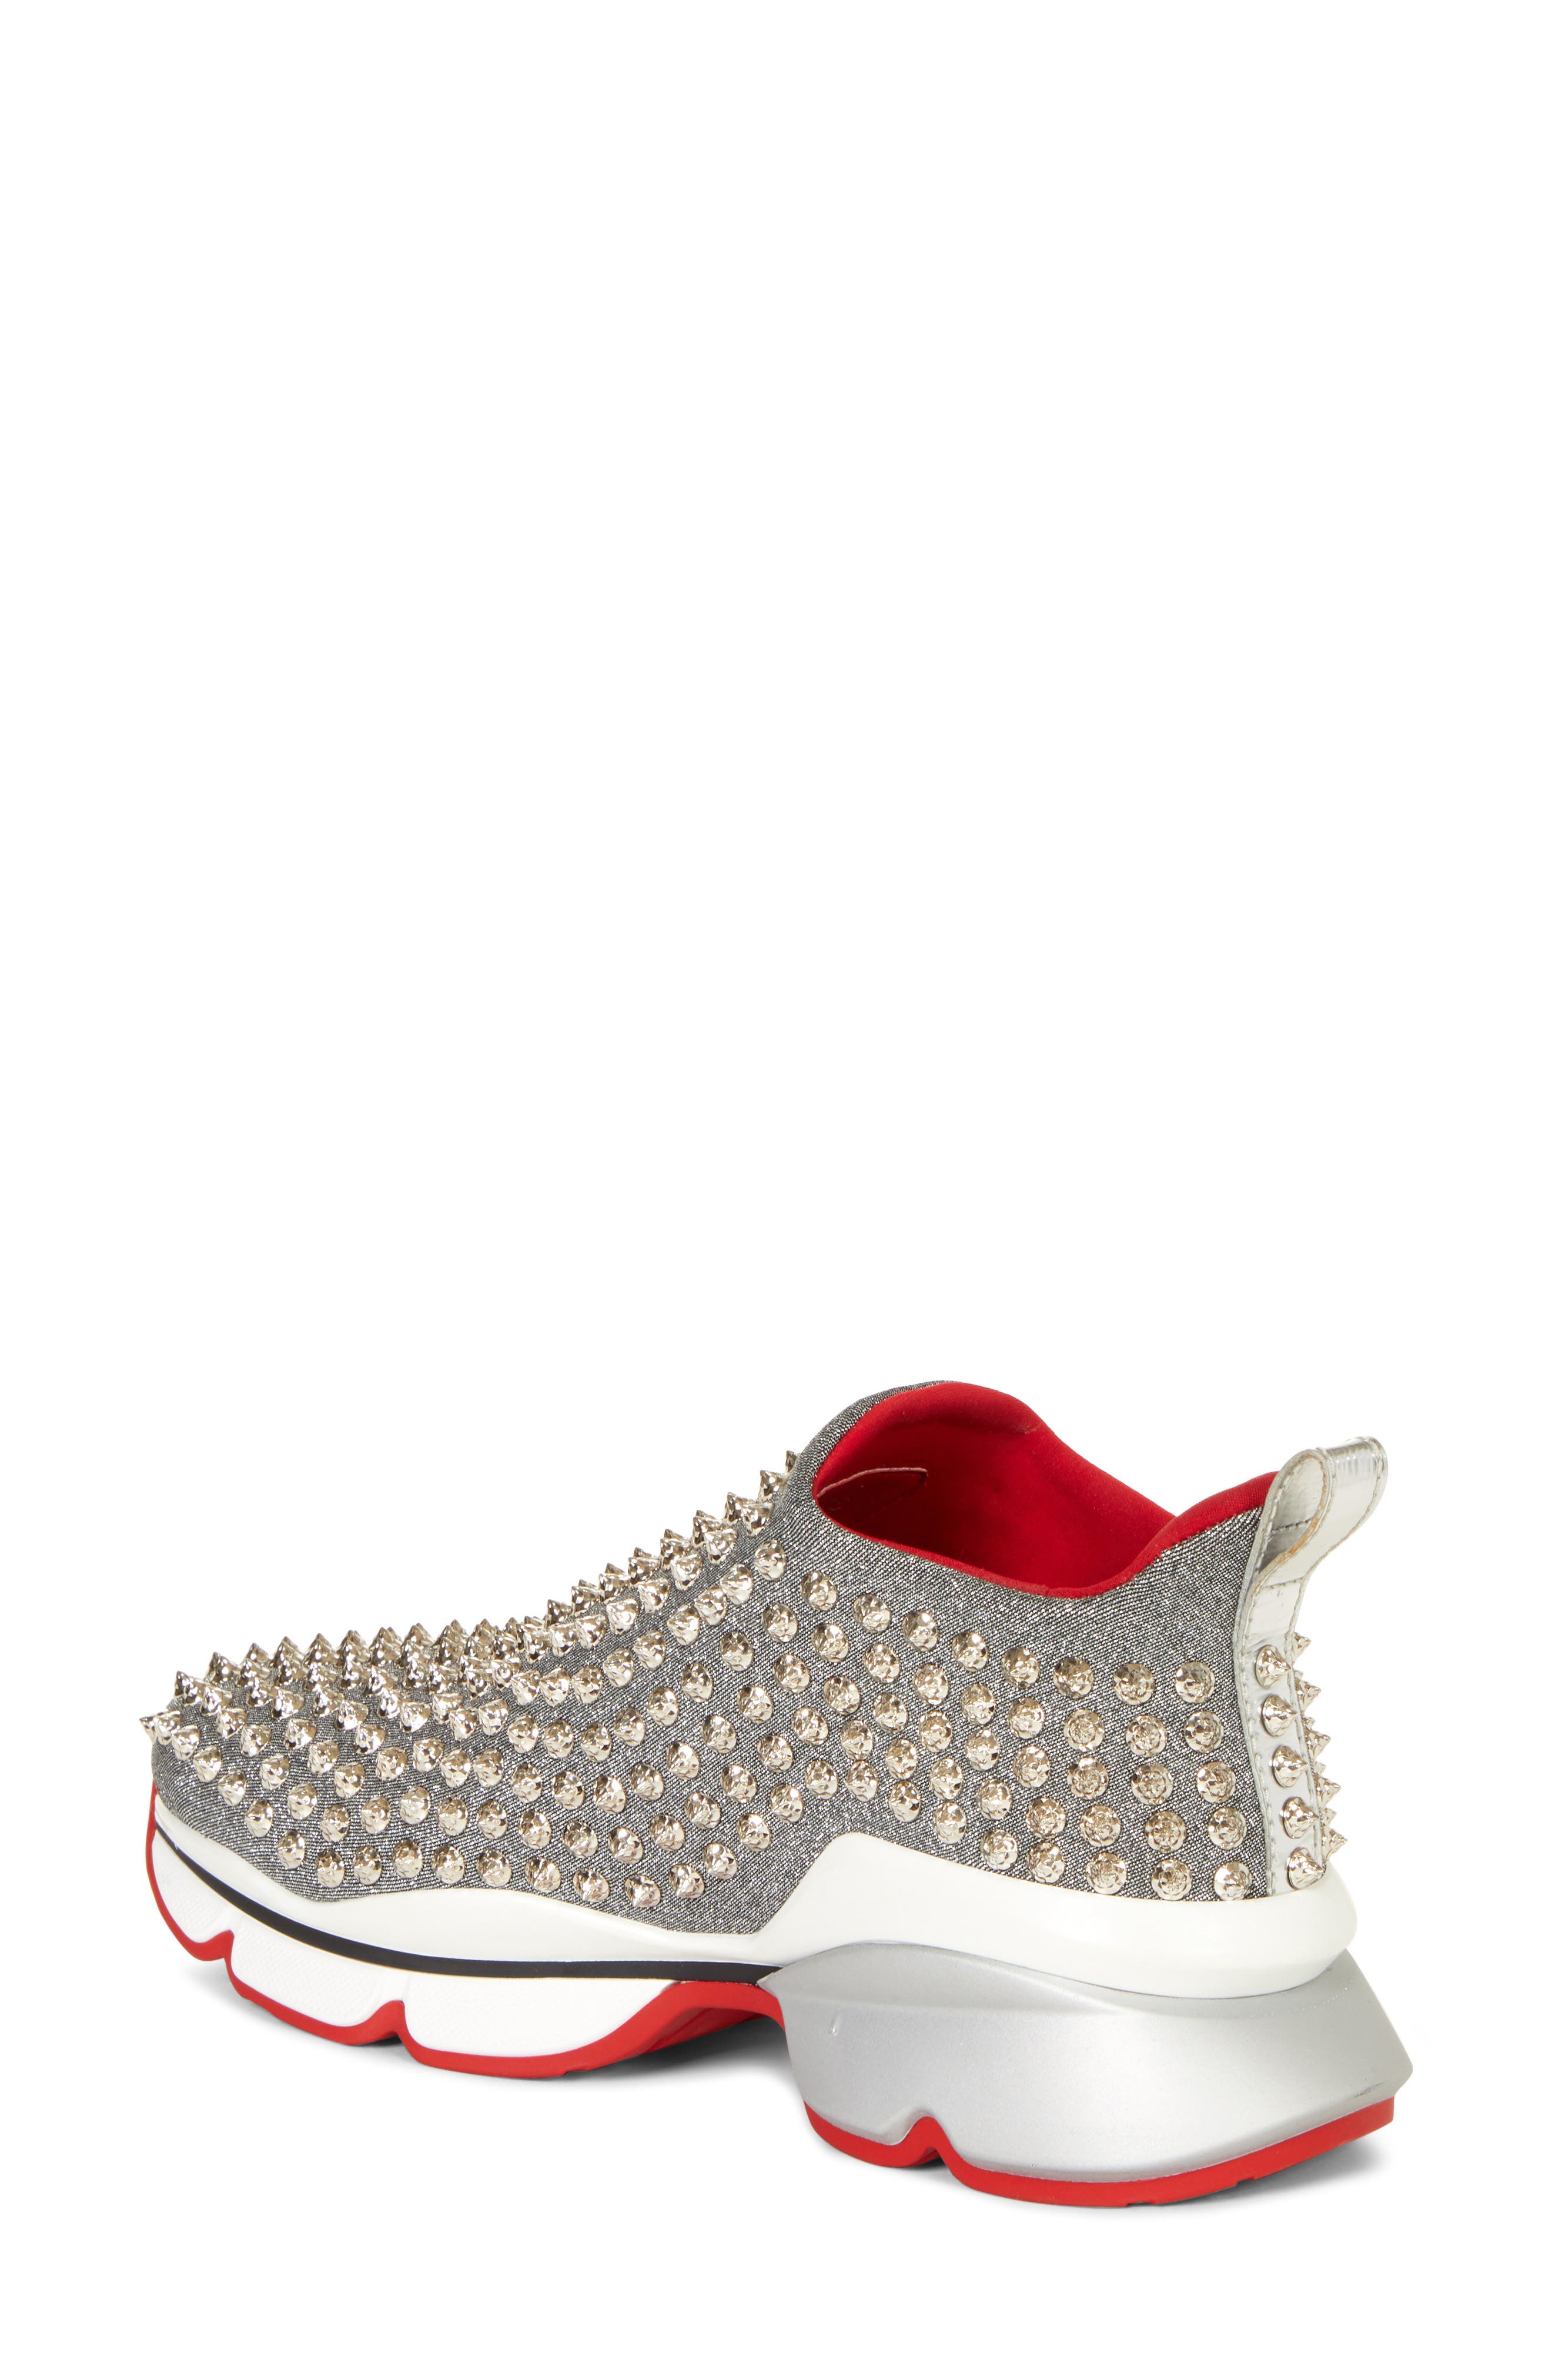 CHRISTIAN LOUBOUTIN,                             Spiky Sock-Knit Slip-On Sneaker,                             Alternate thumbnail 2, color,                             SILVER